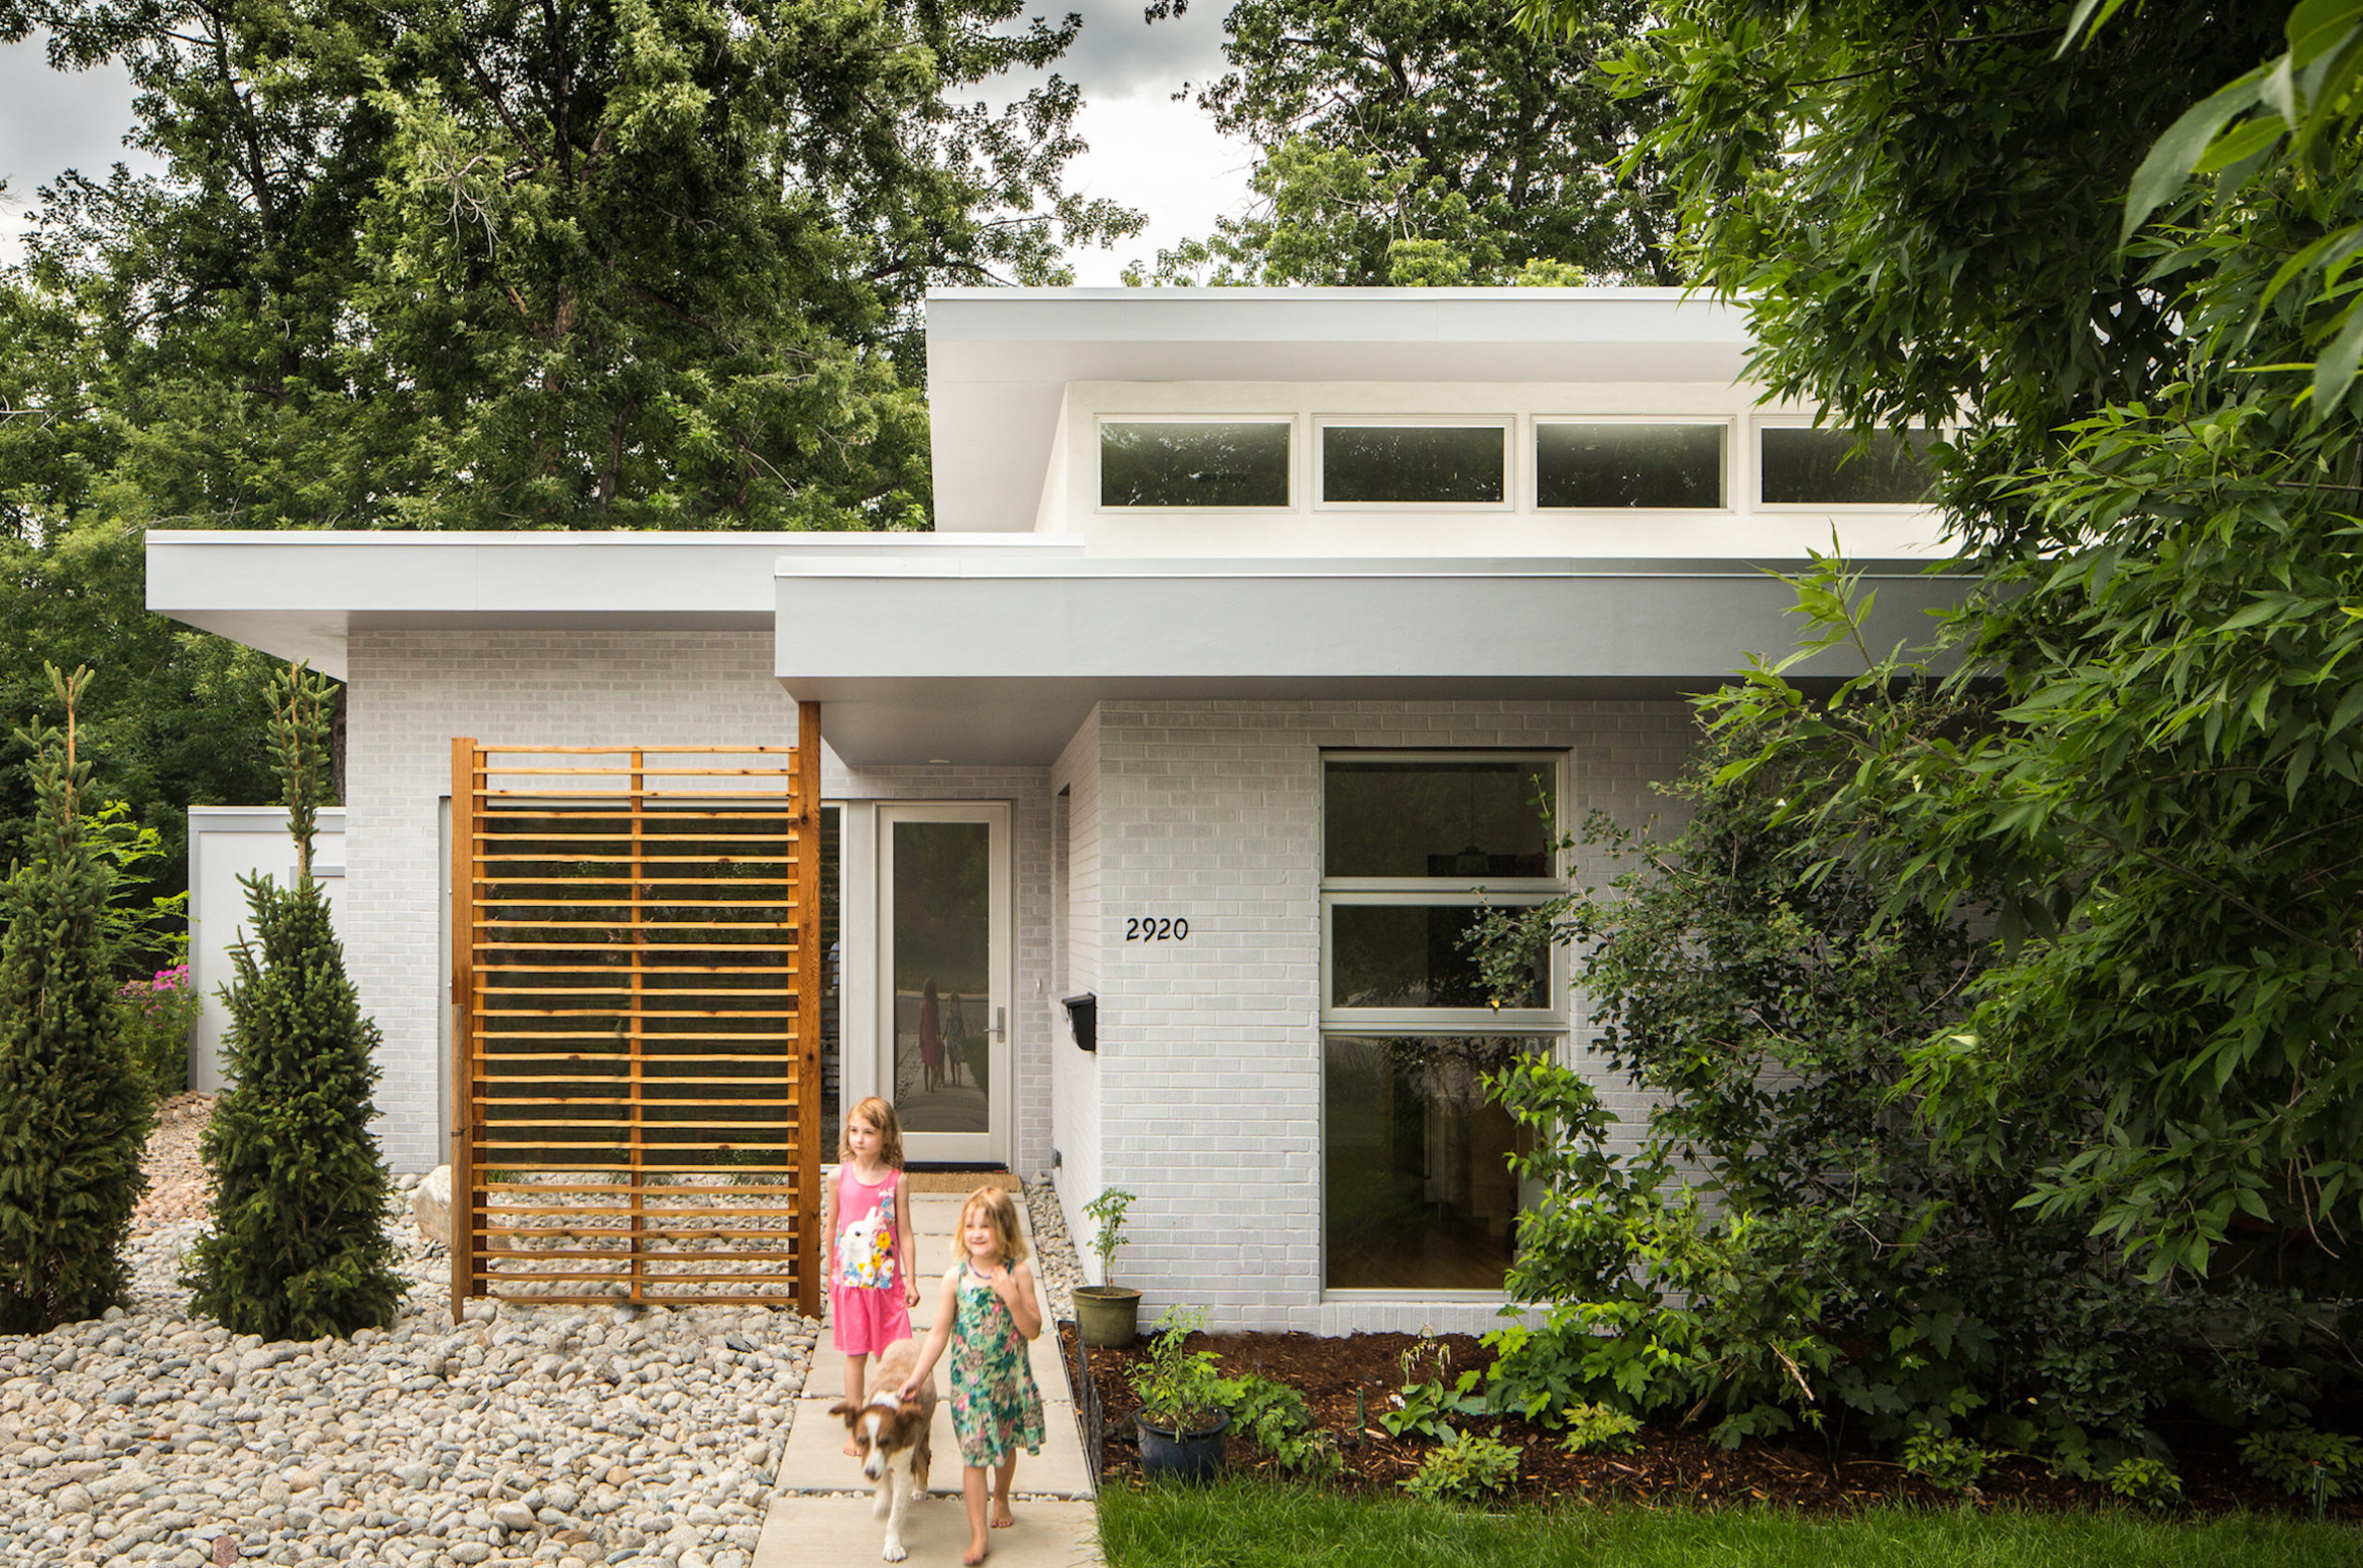 Reduce Reuse Remodel by Renée del Gaudio Architecture